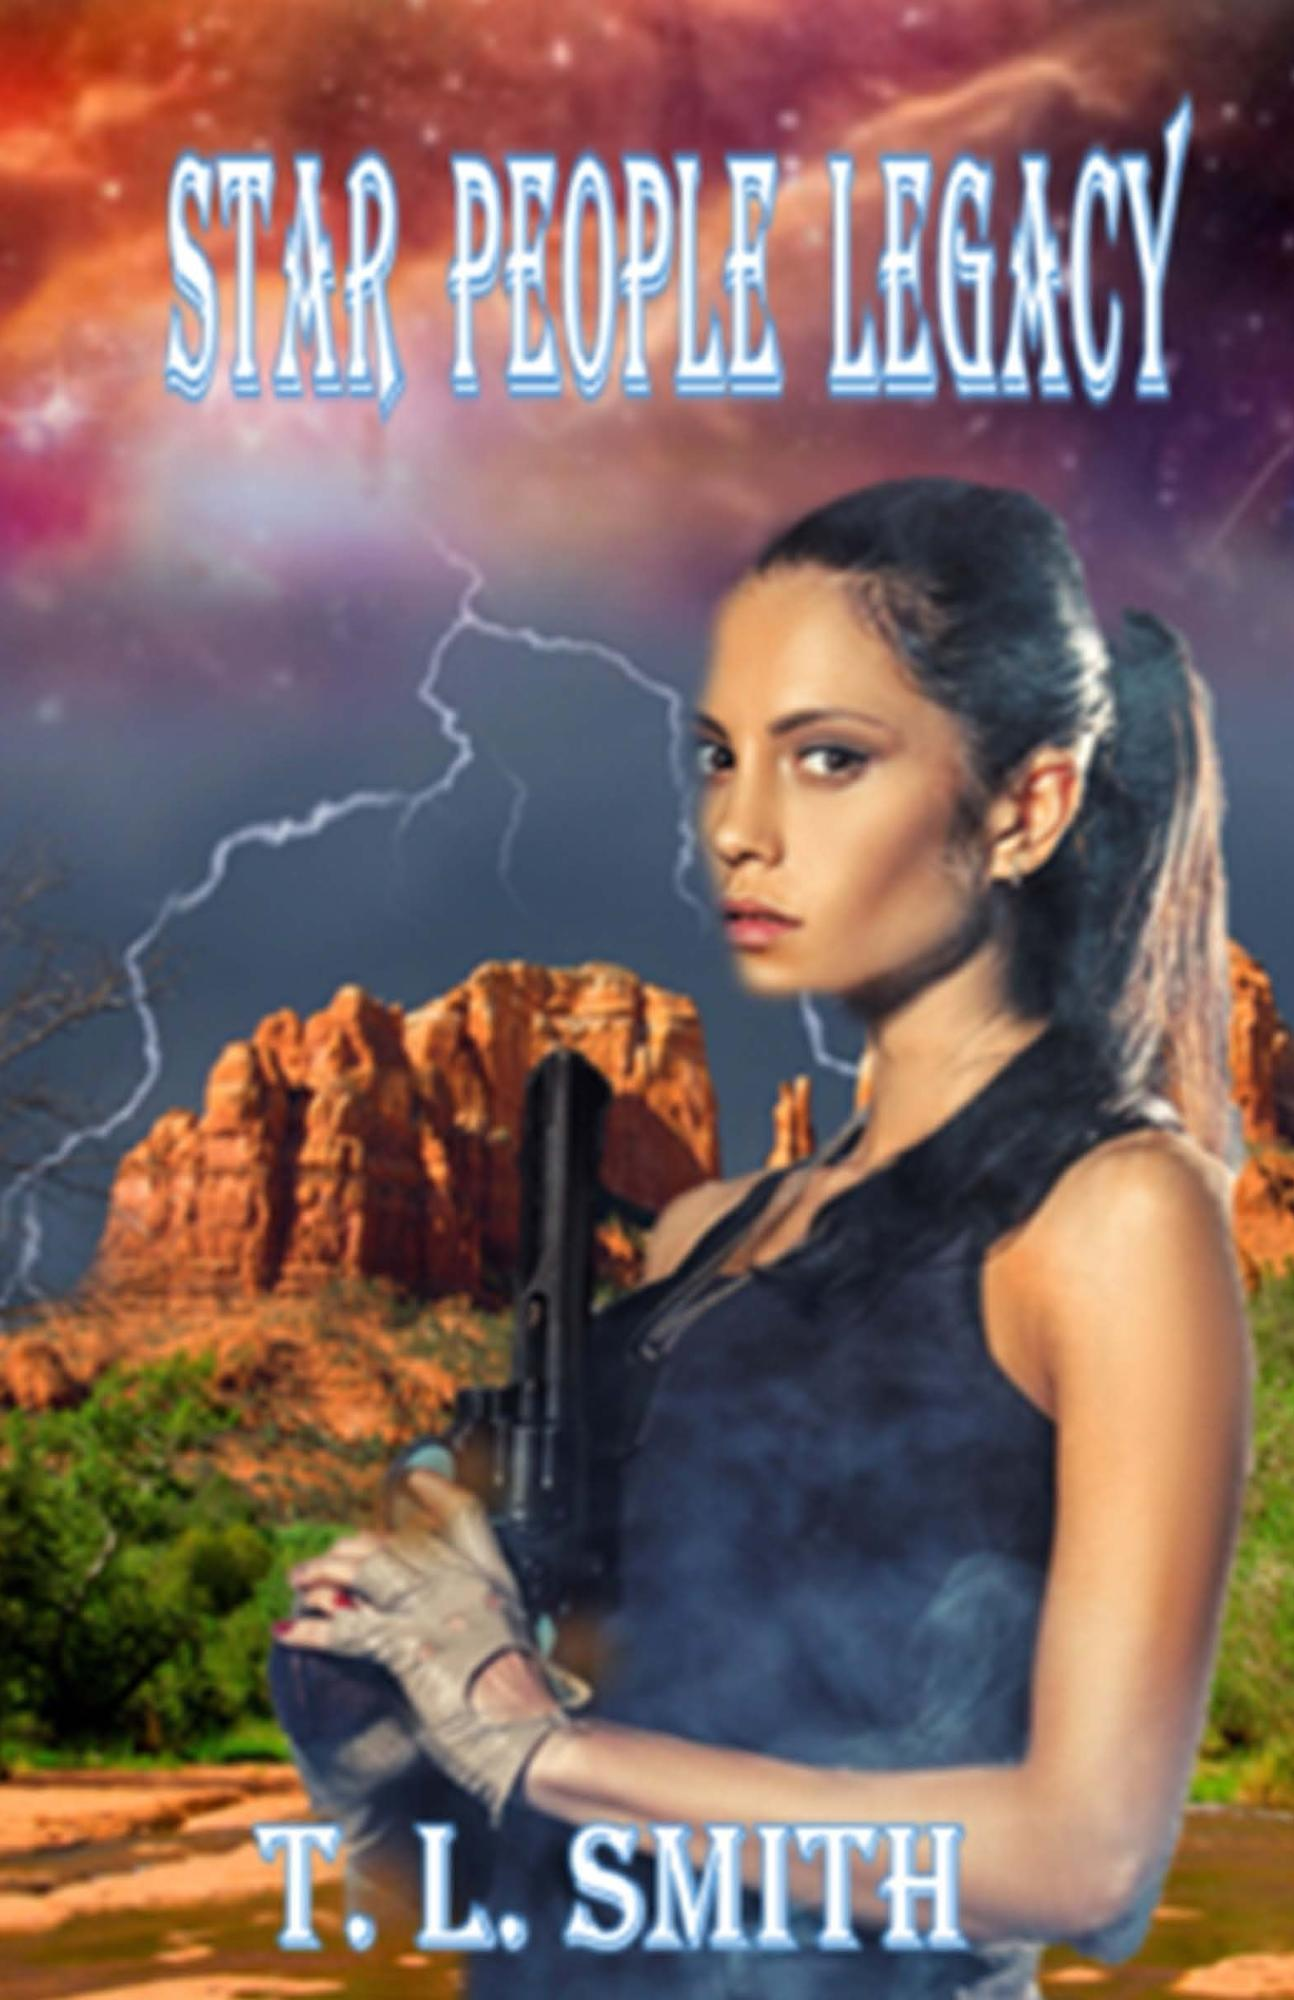 Star_People_Legacy_Cover_for_Kindle